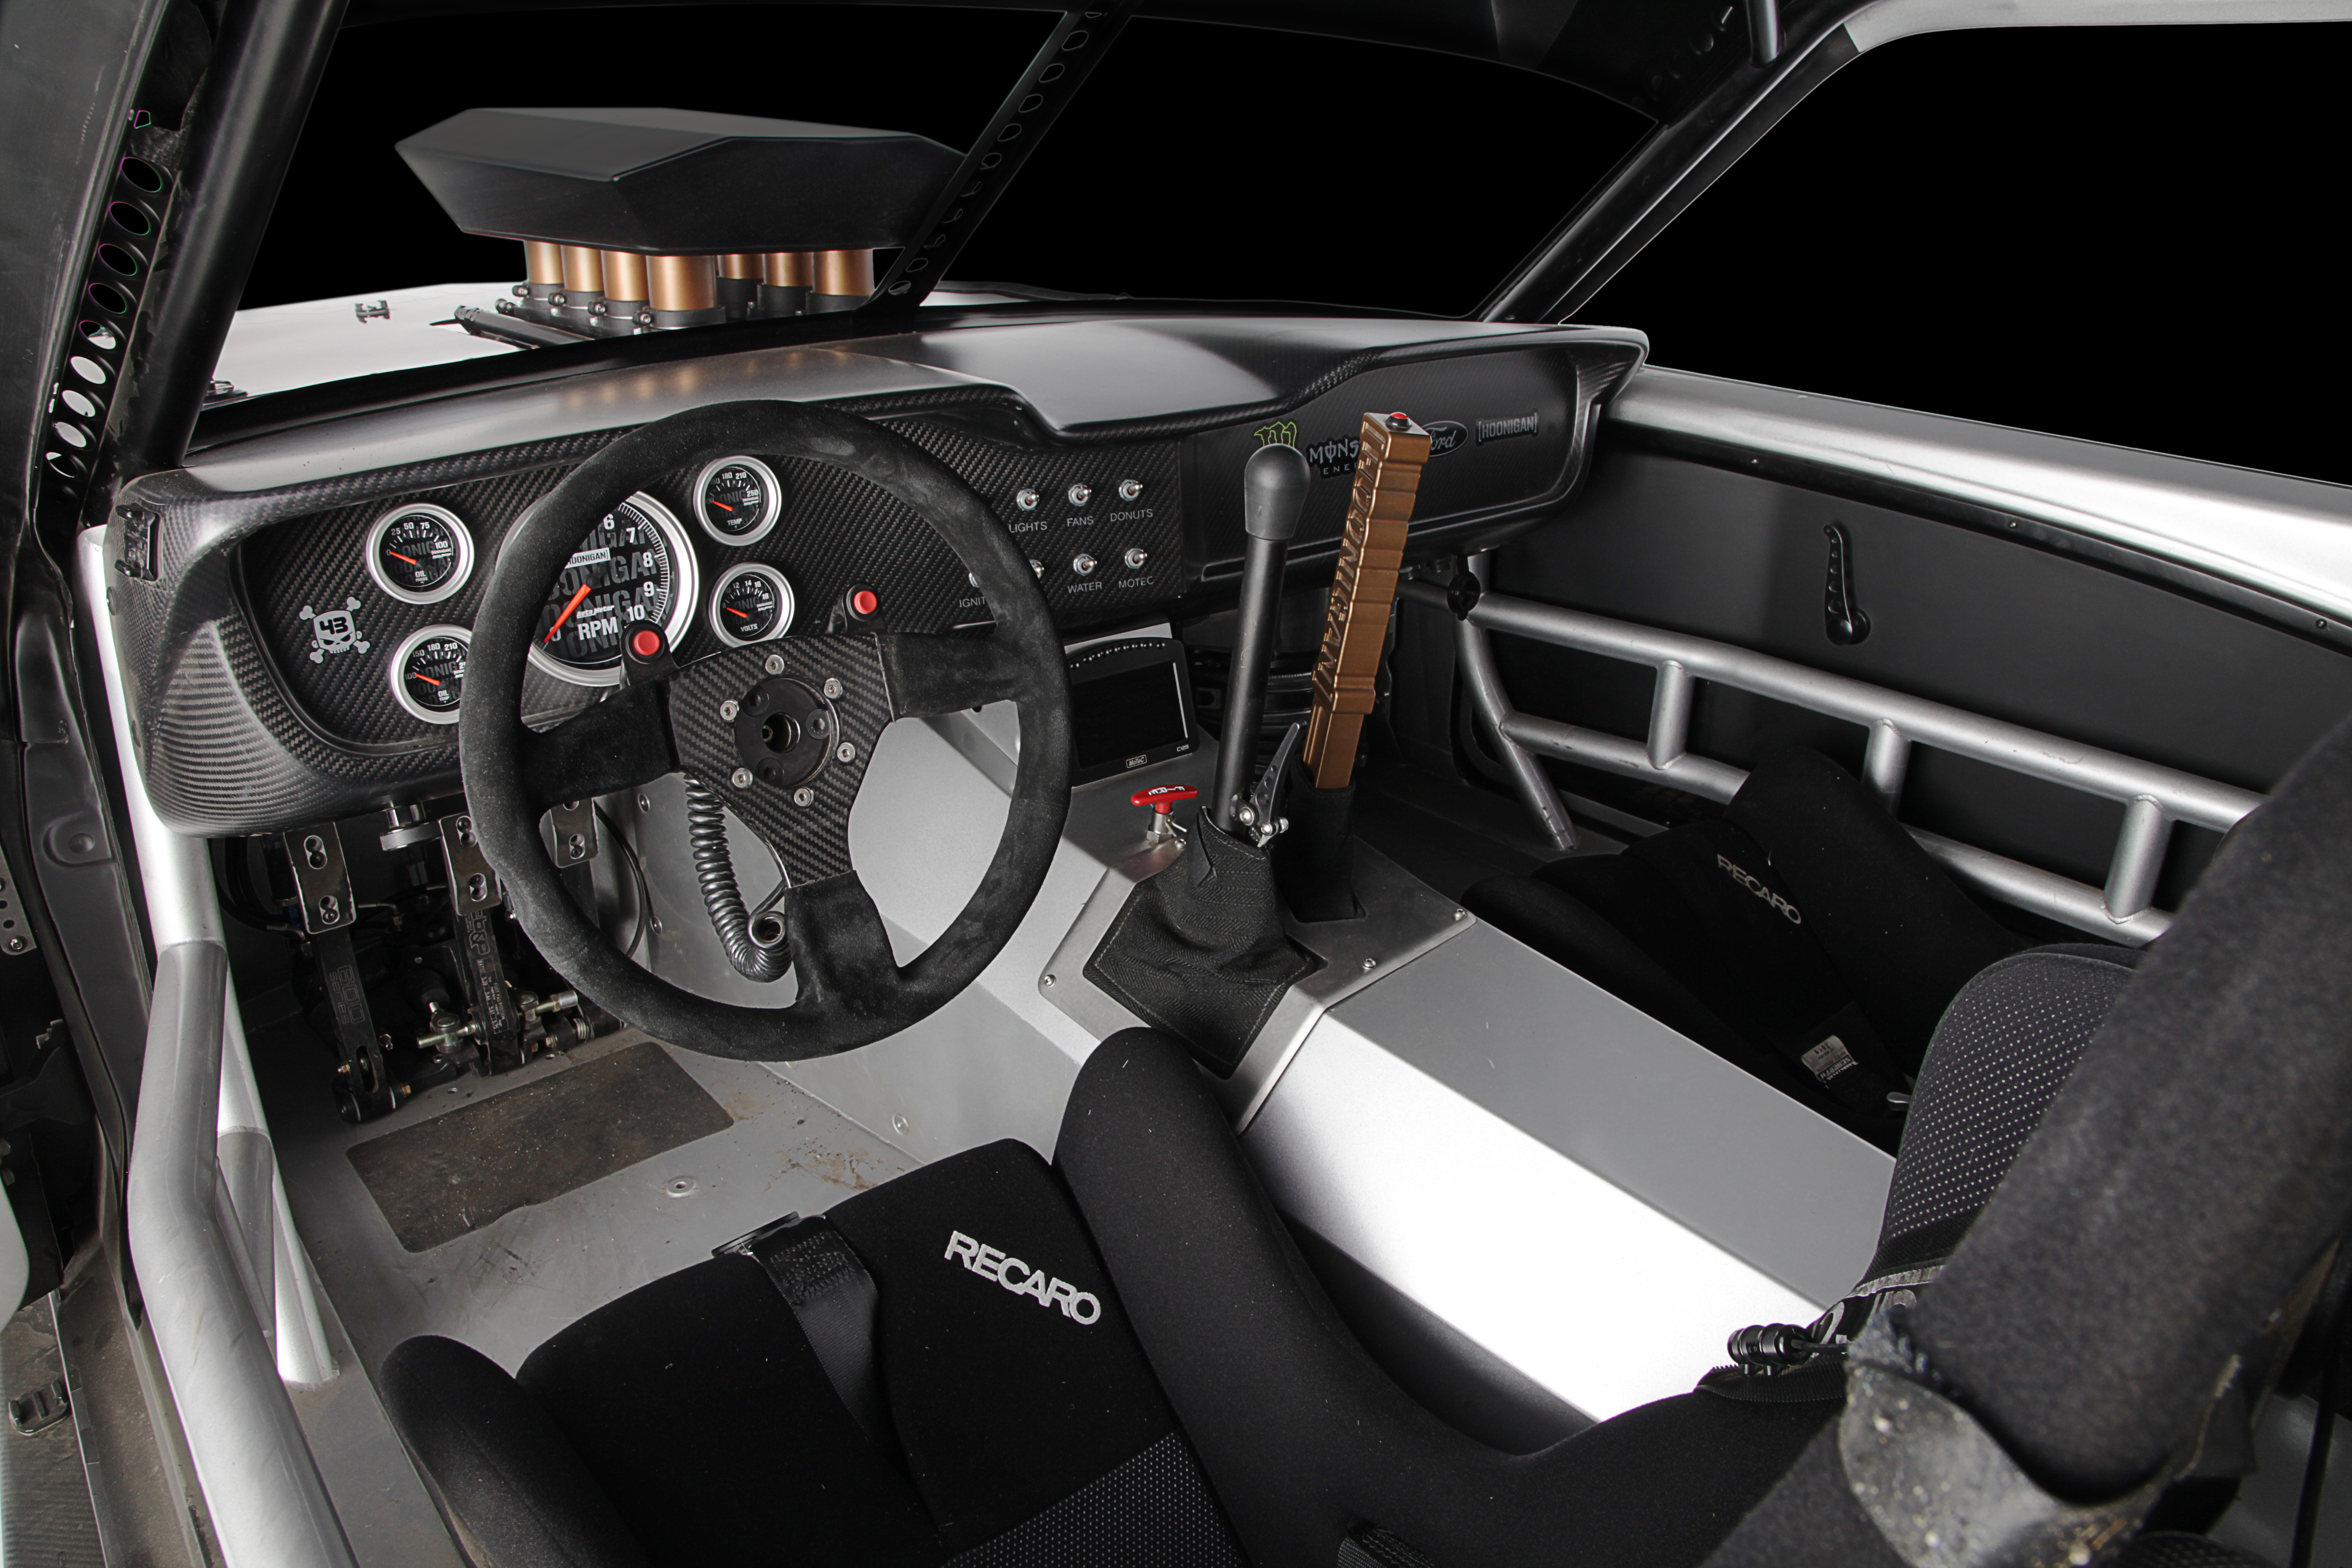 The interior is race car Spartan, with carbon-fiber dash and a bead-blasted aluminum trans tunnel. The handle nearest Block's driver seat is the shifter for the sequential six-speed Sadev transmission and the billet Hoonigan lever is for the rear brakes. Mounted at the forward end of the tunnel is a MoTec C125 data logger.